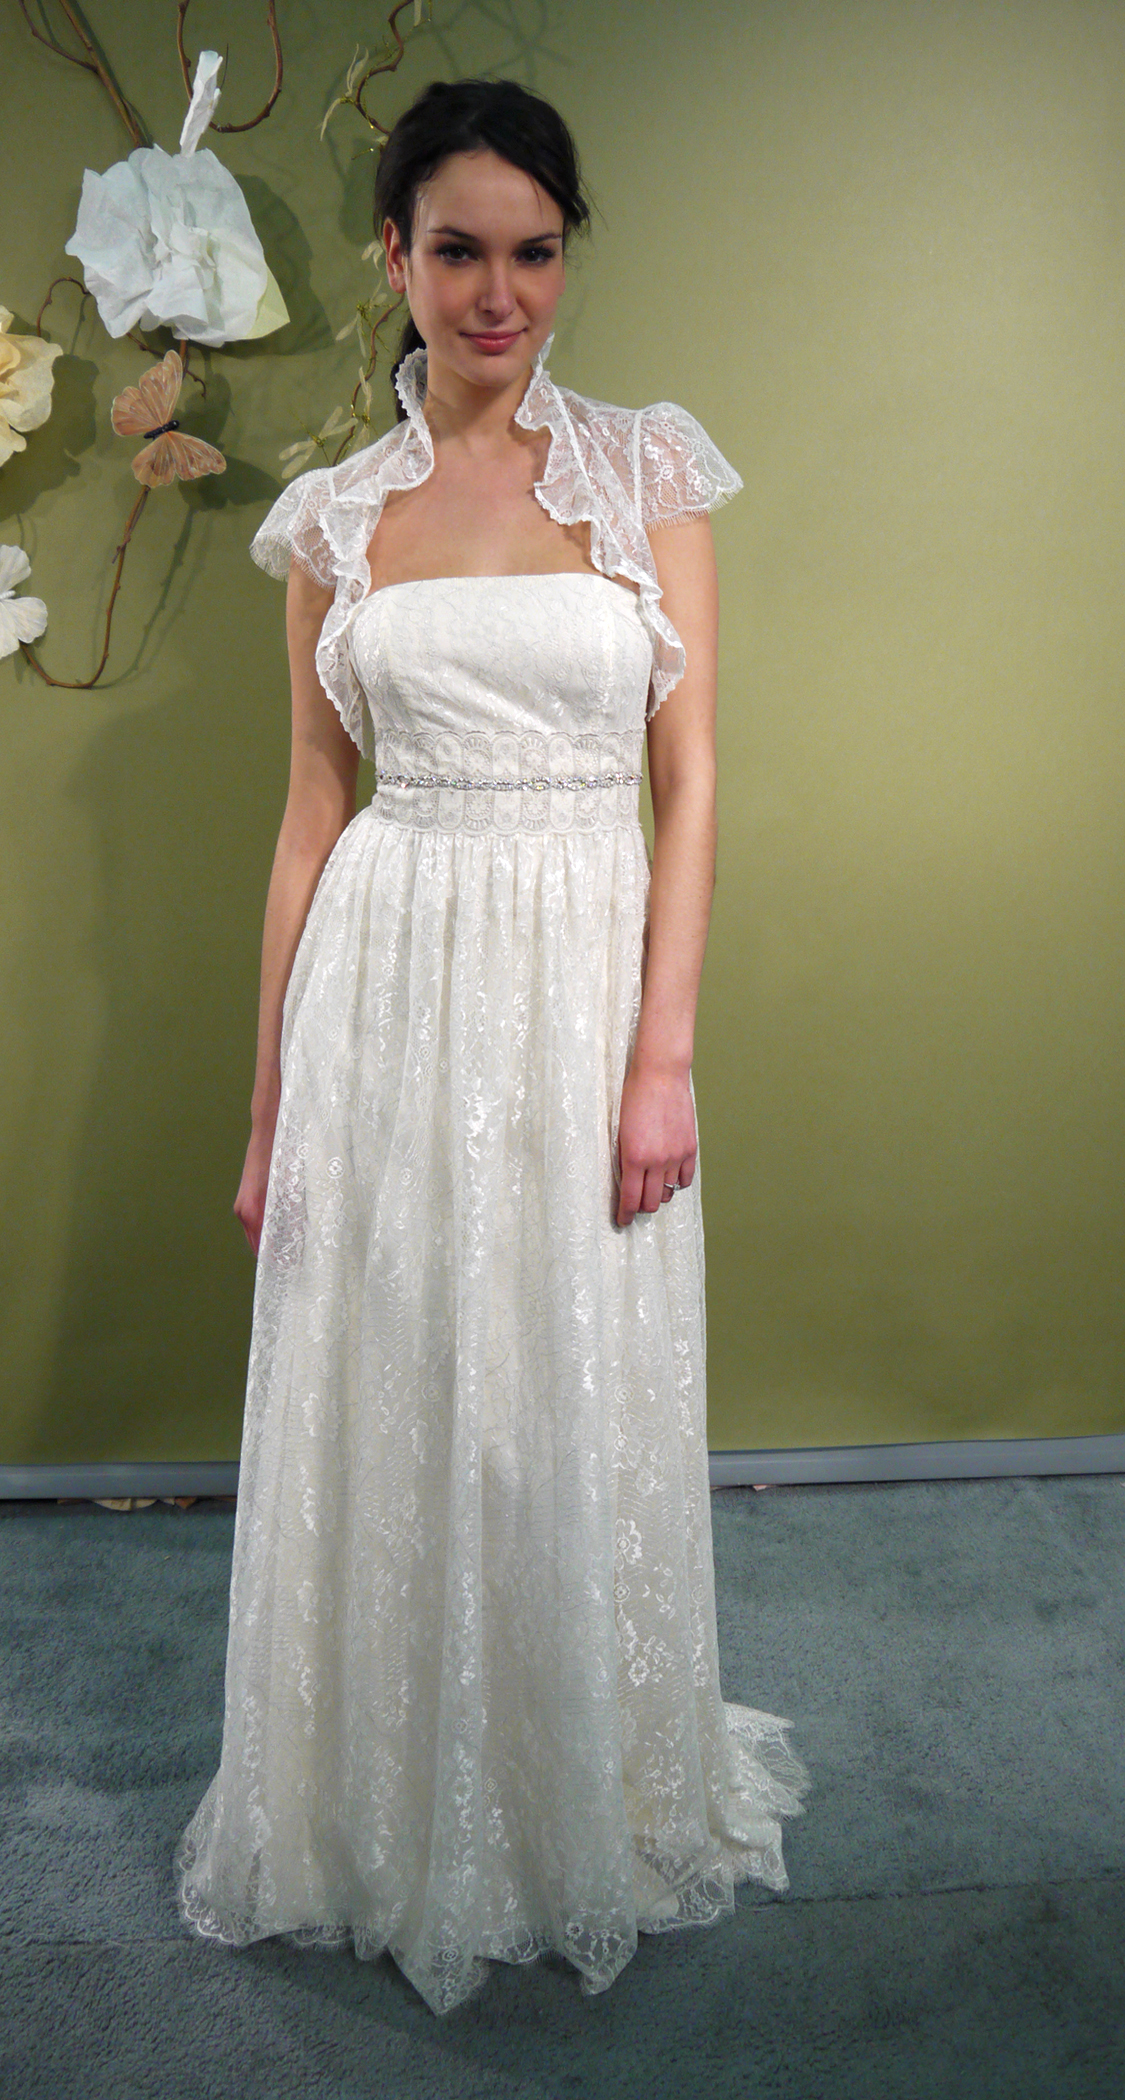 Fall-2011-wedding-dresses-norah-strapless-empire-wedding-dress-beaded-bridal-belt-claire-pettibone-lace-bolero-cap-sleeves.original